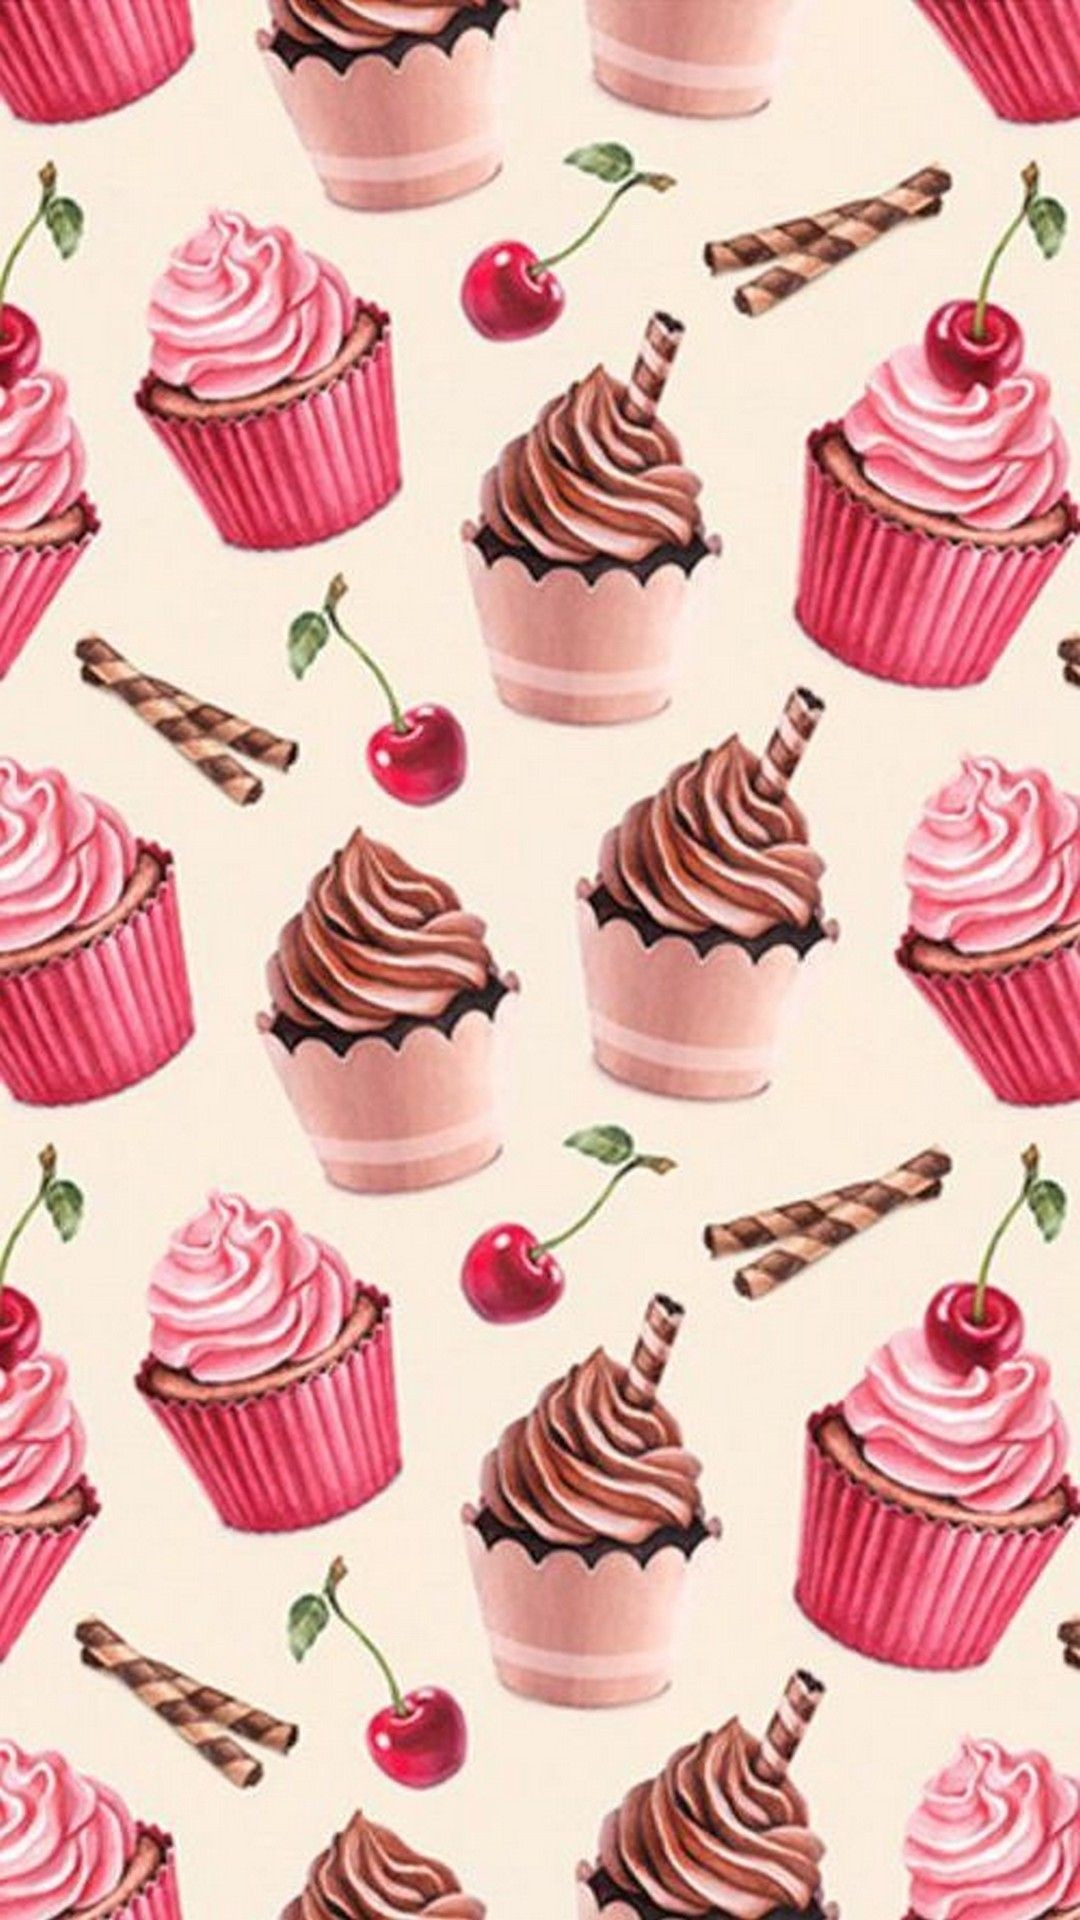 Res: 1080x1920, Android Wallpaper Cherry Cupcake - Best Android Wallpapers